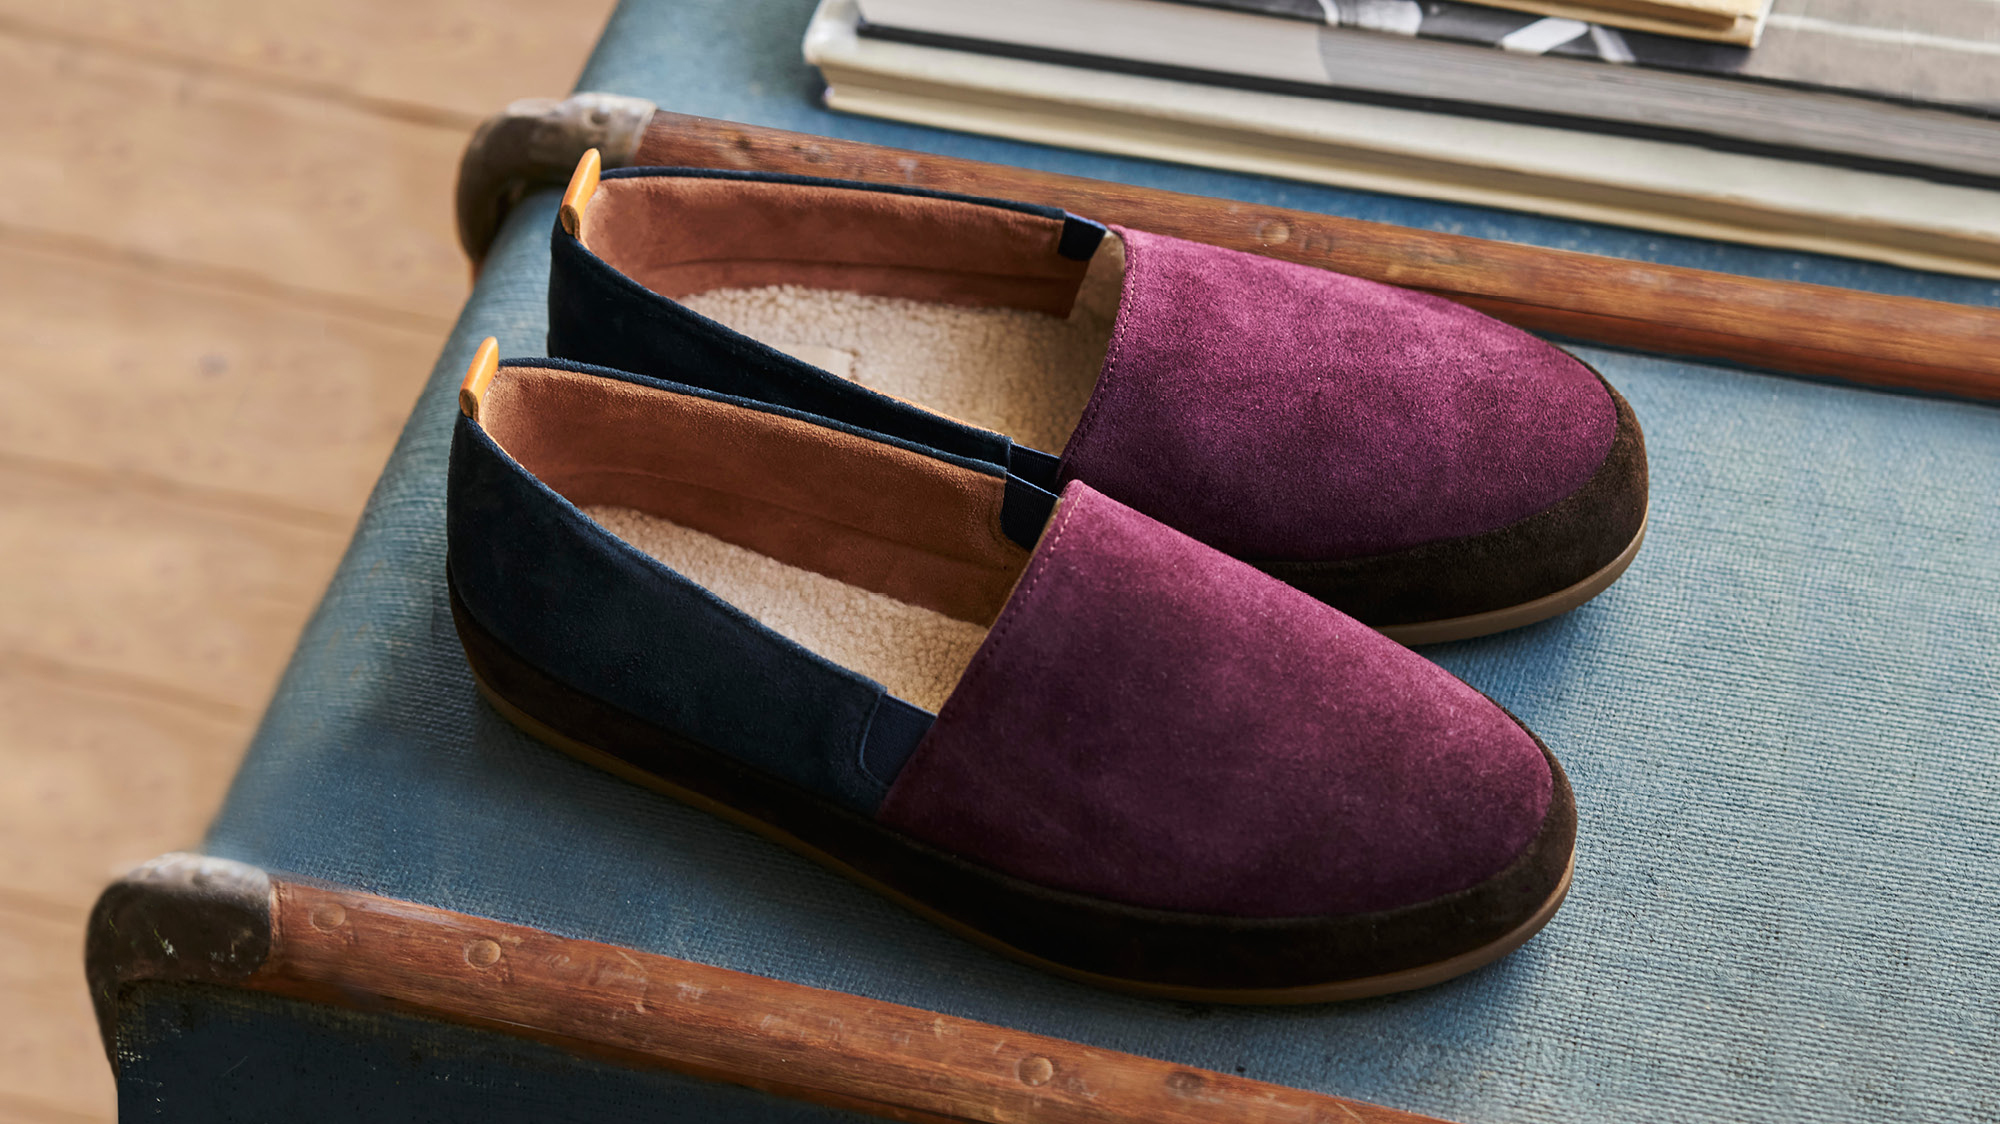 Gifts for Him - Colourful Slip Ons for Men